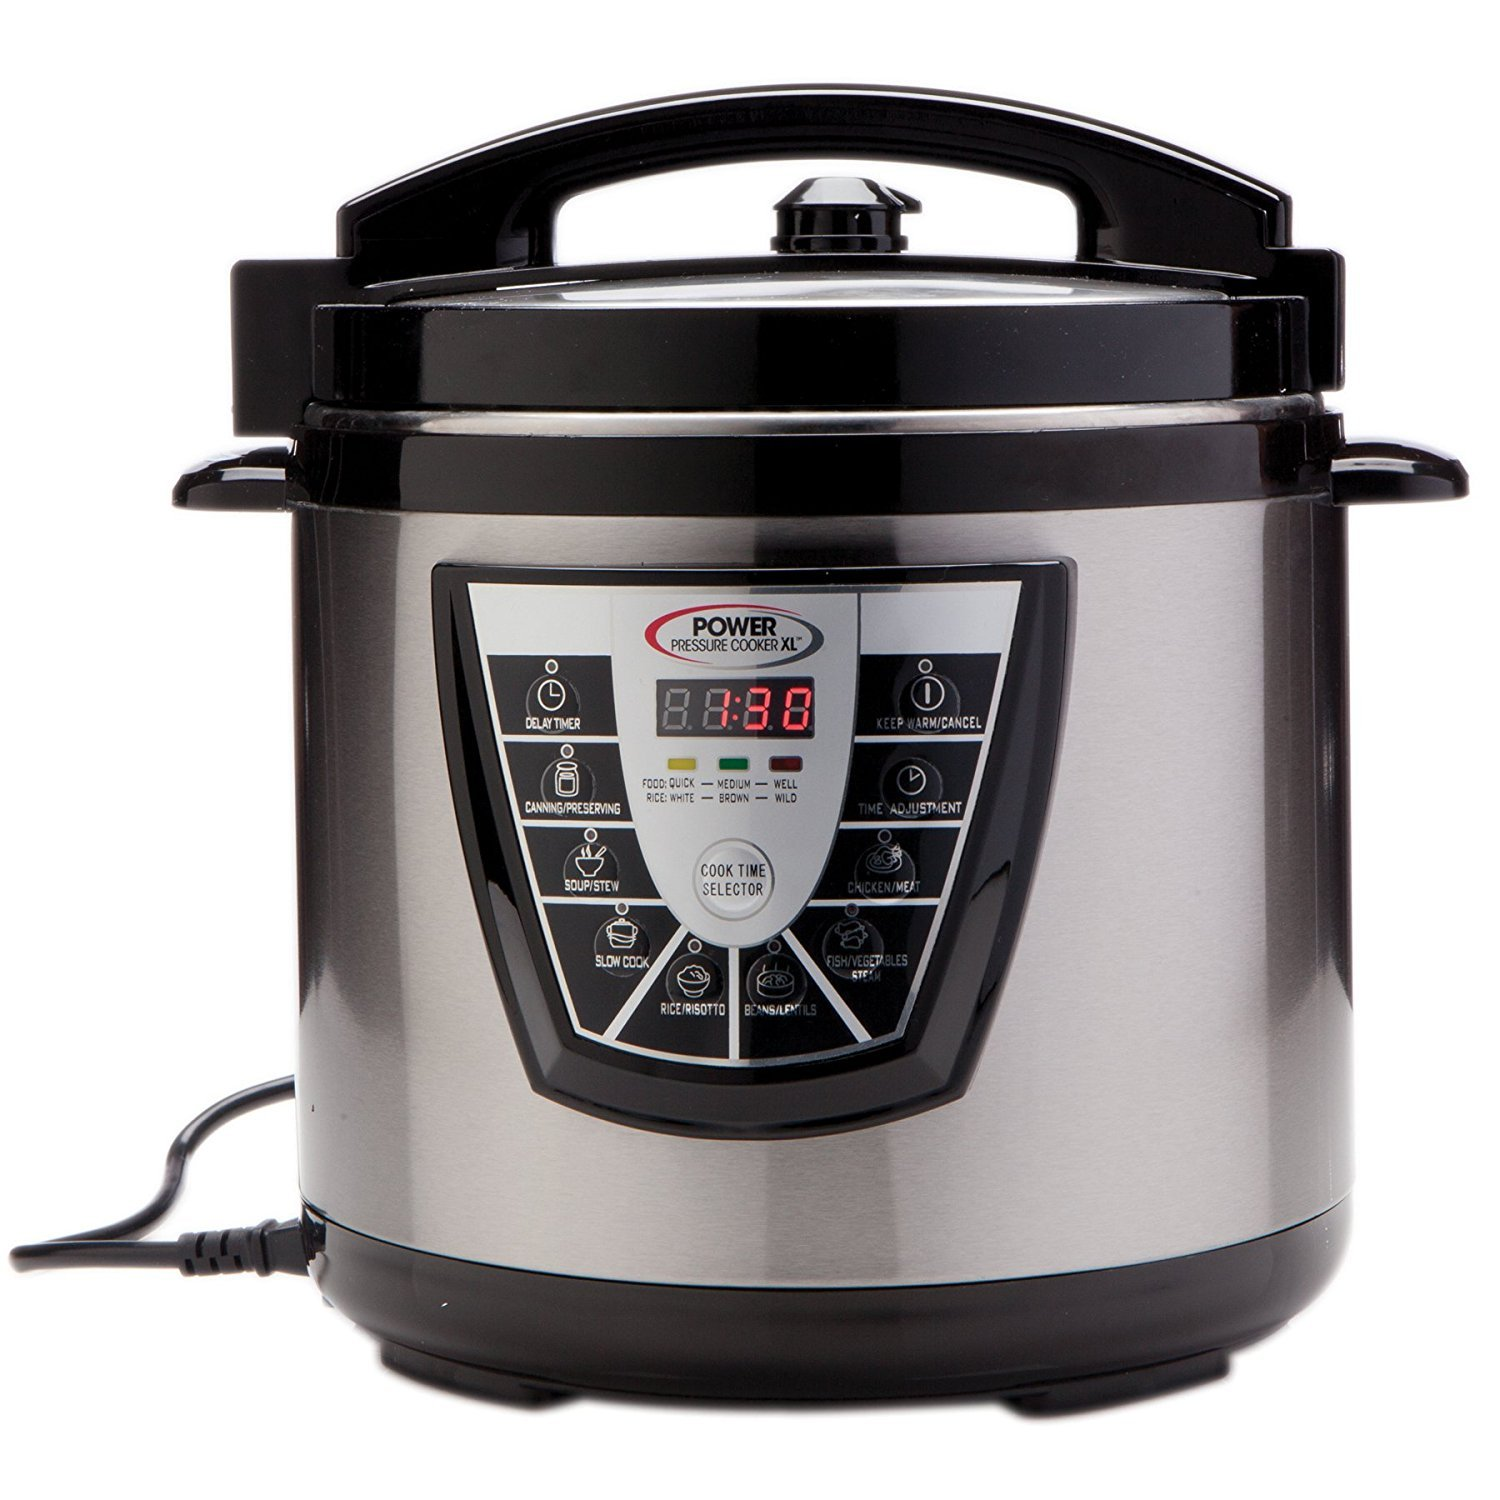 Power Pressure Cooker XL 8 Quart, Digital Non Stick Stainless Steel Steam Slow Cooker and Canner